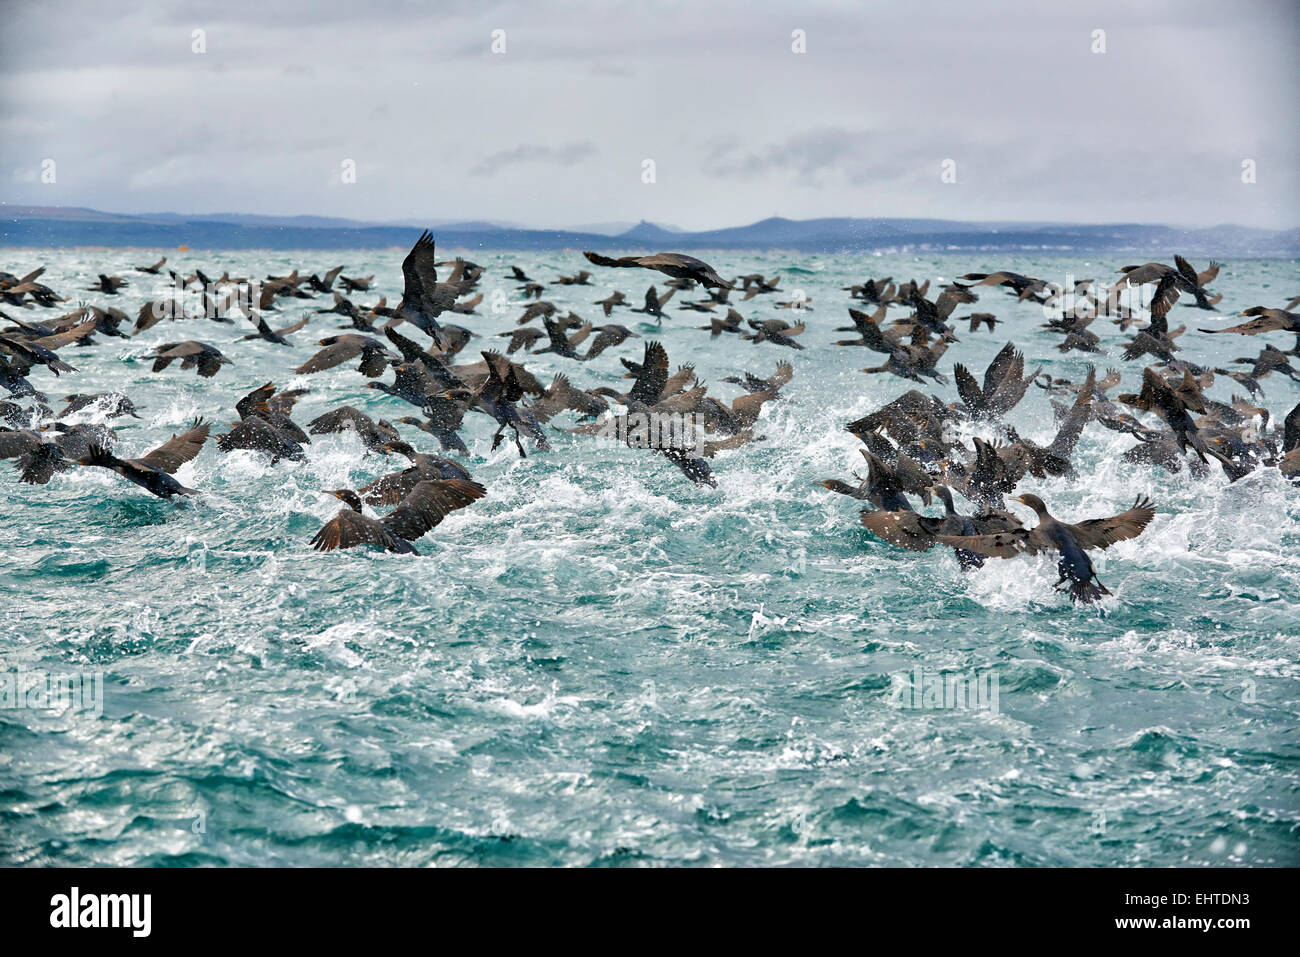 huge swarm of cormorants (Phalacrocorax carbo) in Mossel Bay, Western Cape, South Africa - Stock Image